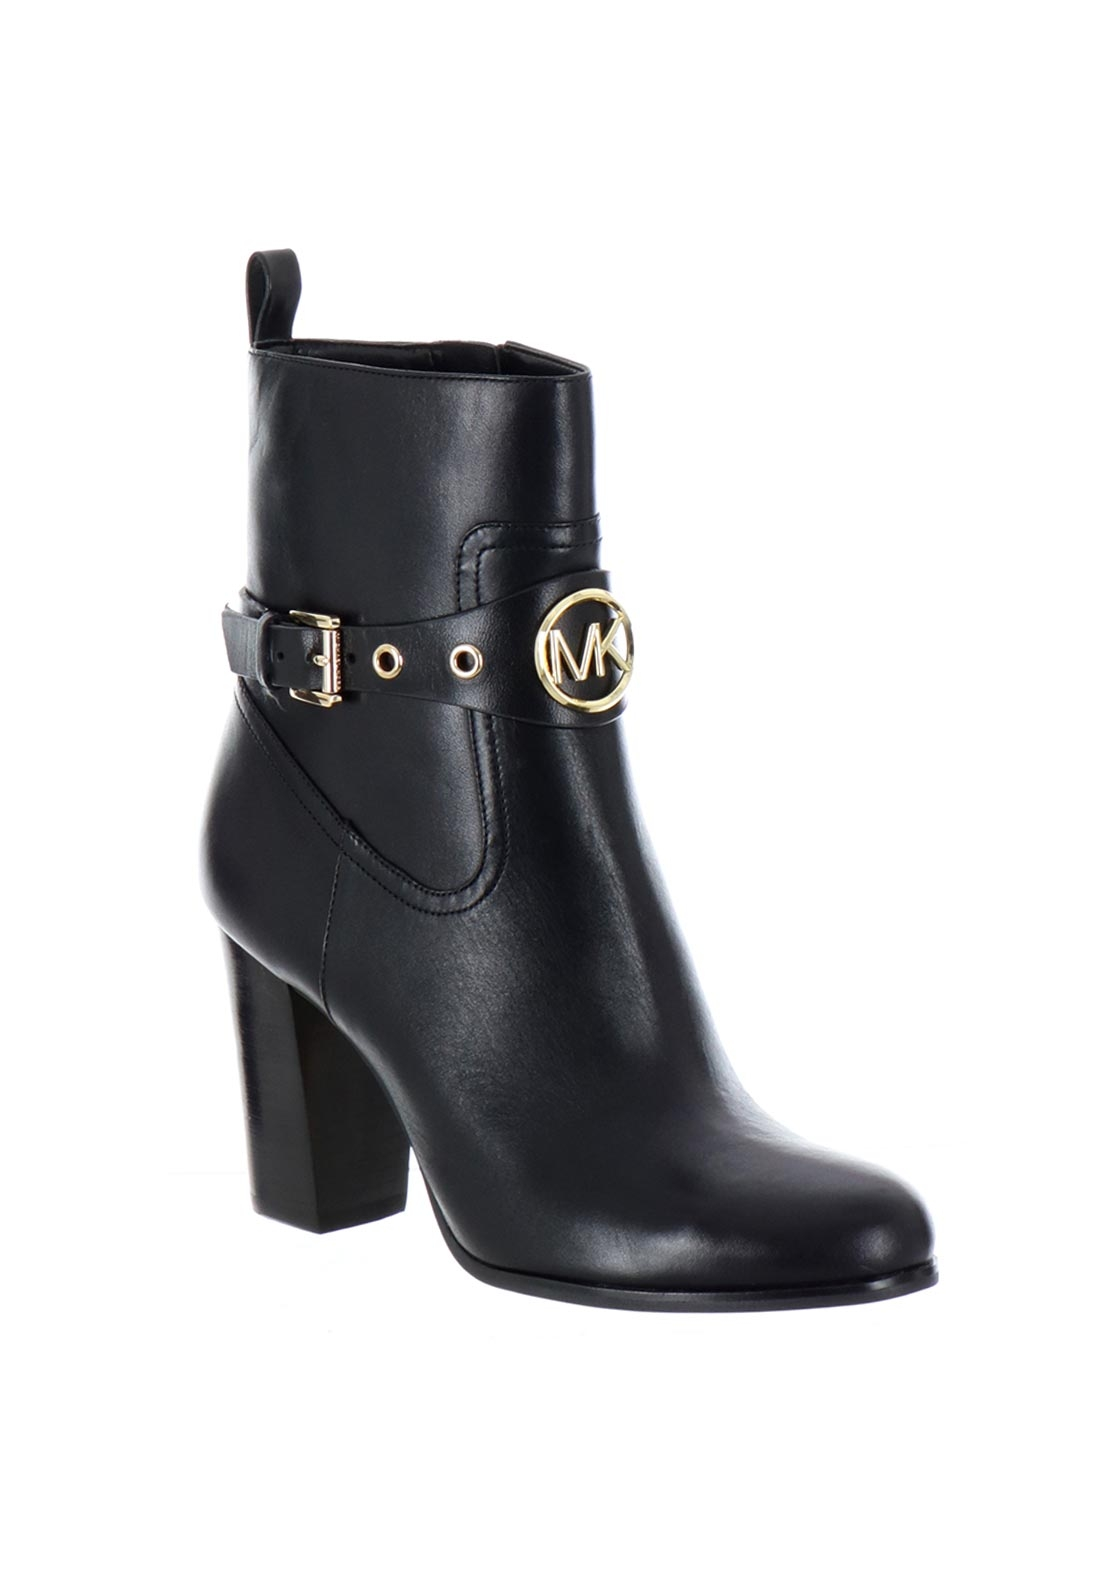 aa4fc2d4572 MICHAEL Michael Kors Heather Leather Ankle Boots, Black